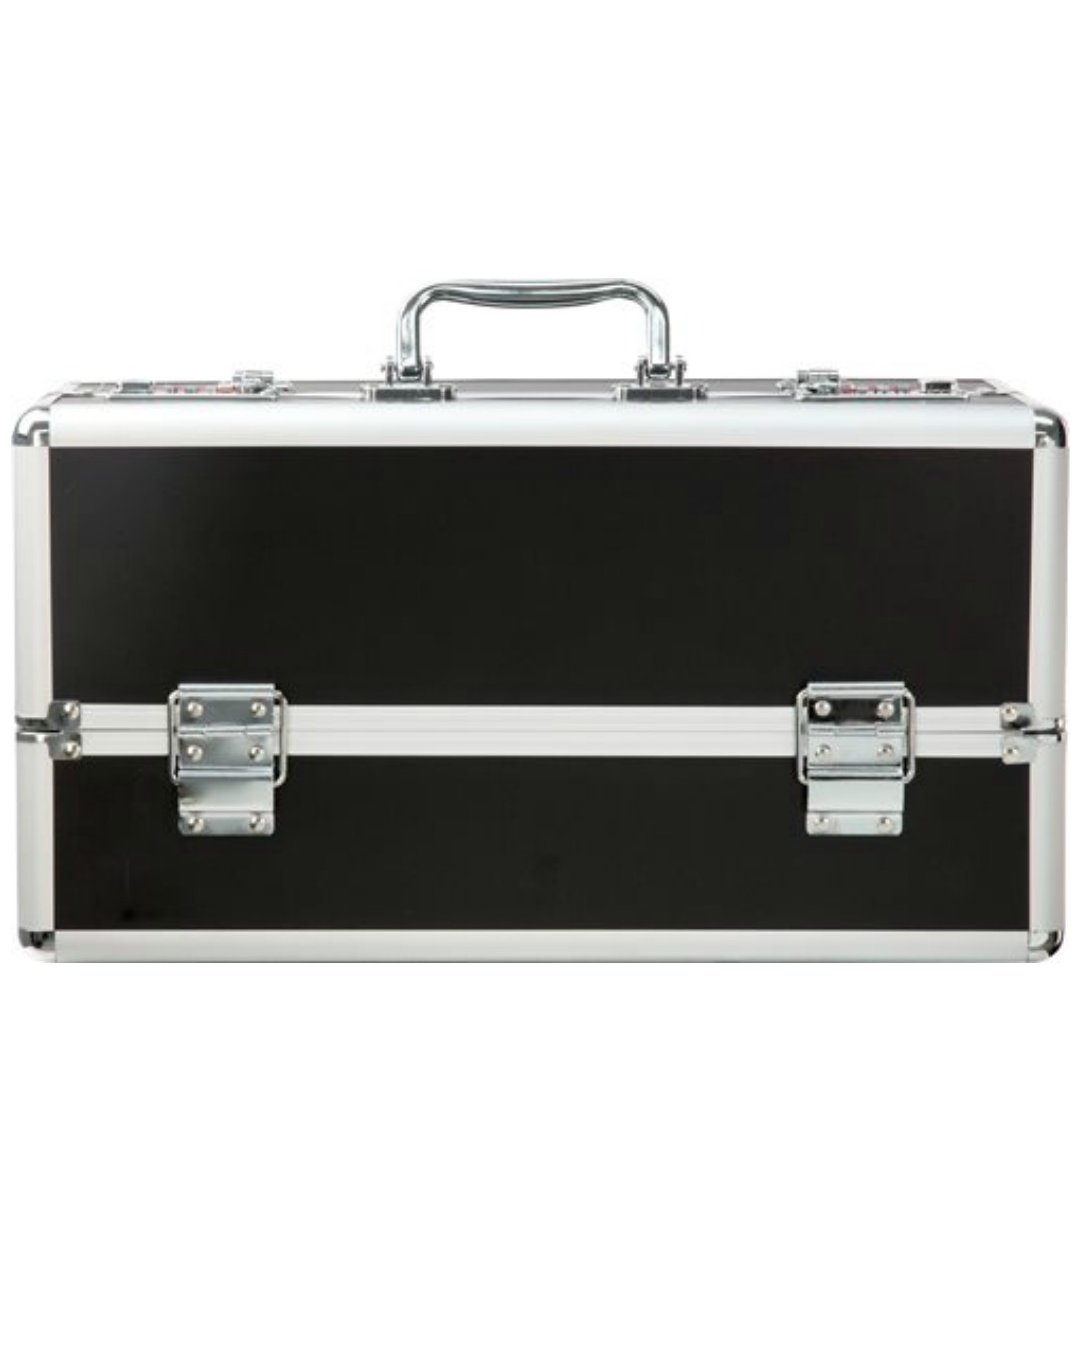 Lockable Sex Toy Storage Case Large Double Tiered - Black